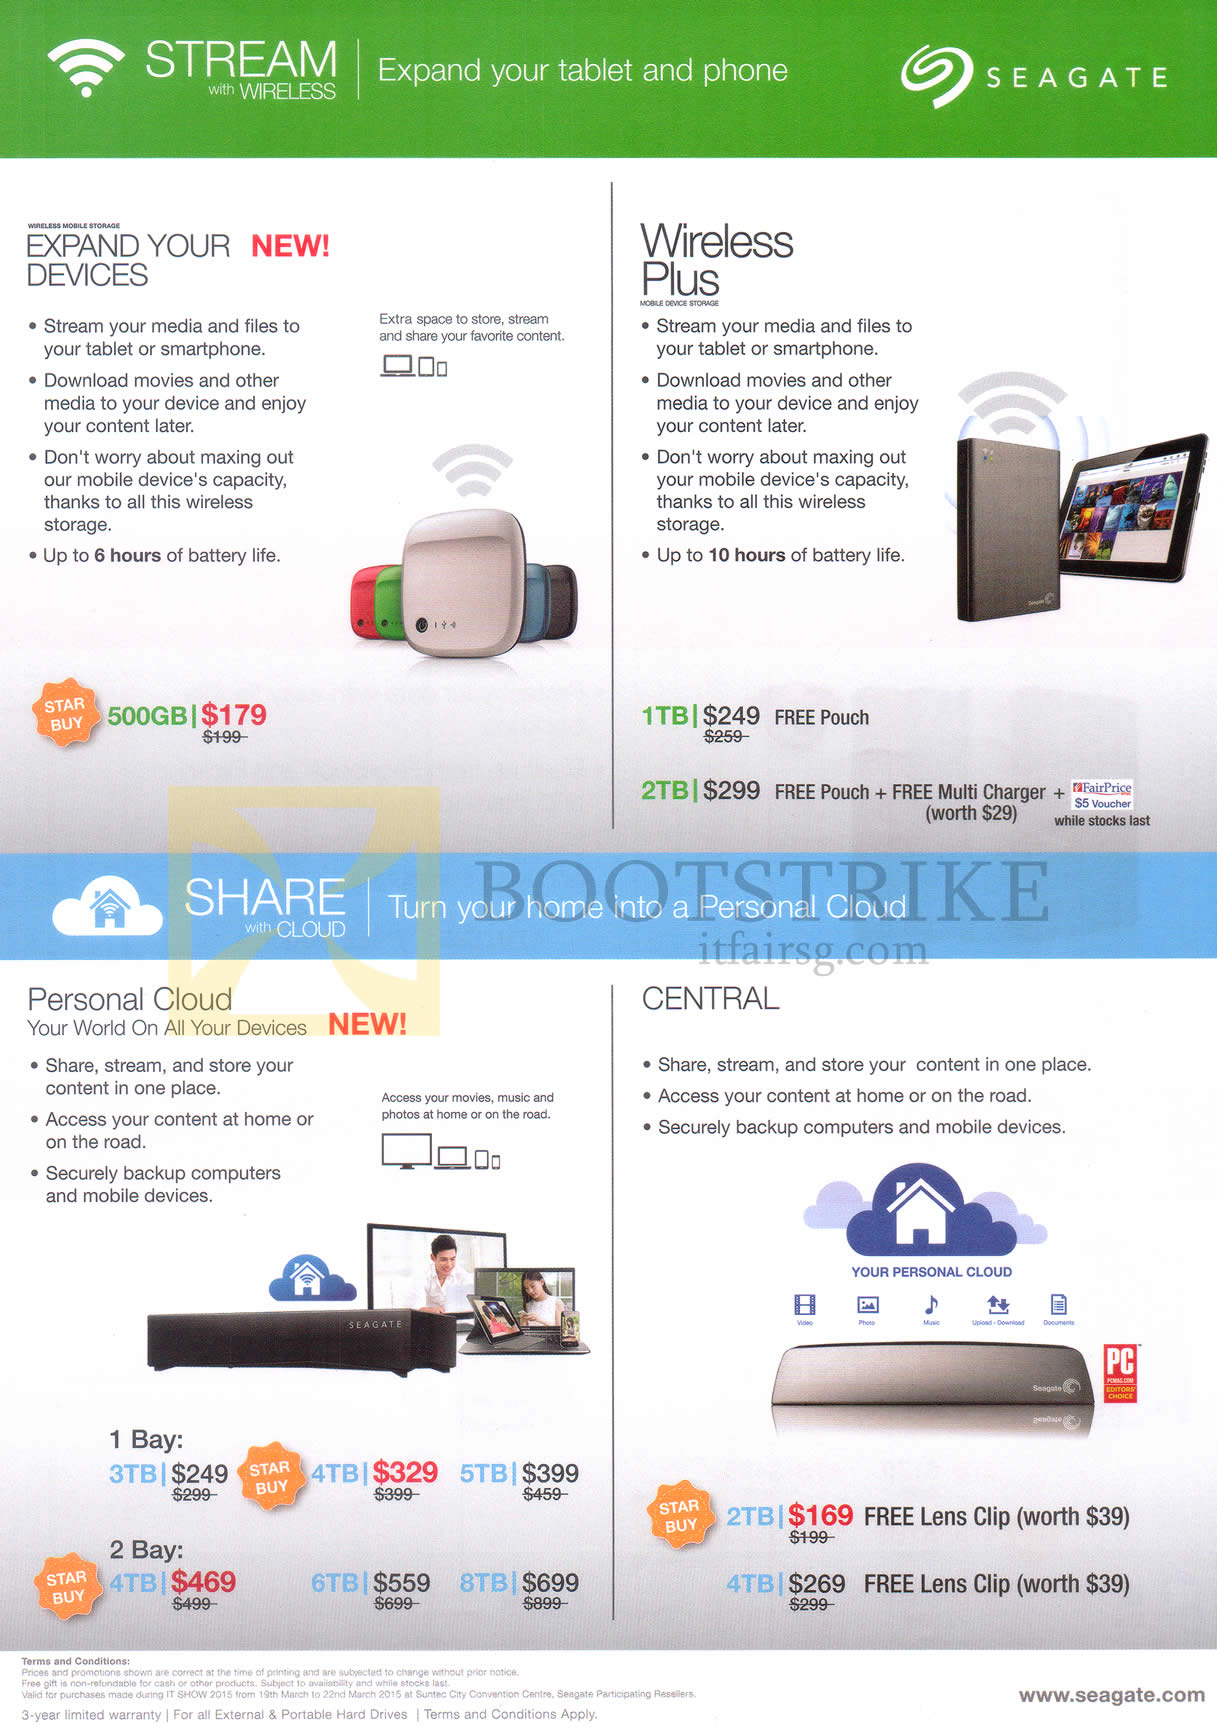 IT SHOW 2015 price list image brochure of Seagate External Storage Wireless Mobile Storage, Wireless Plus, Personal Cloud, Central 1TB, 2TB, 3TB, 4TB